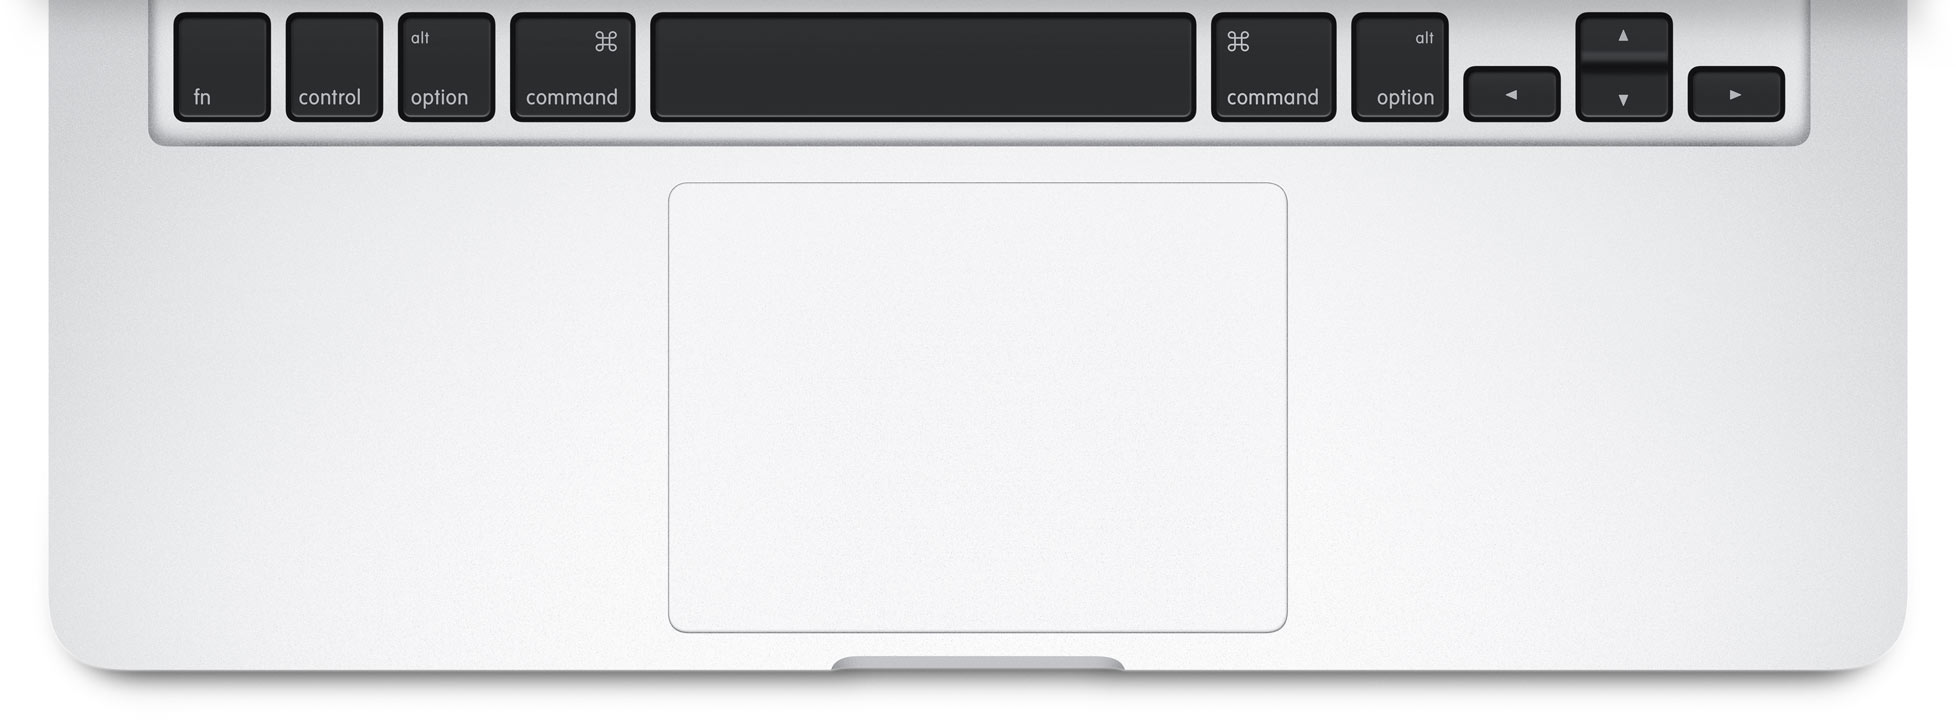 Force Touch un Tap to click